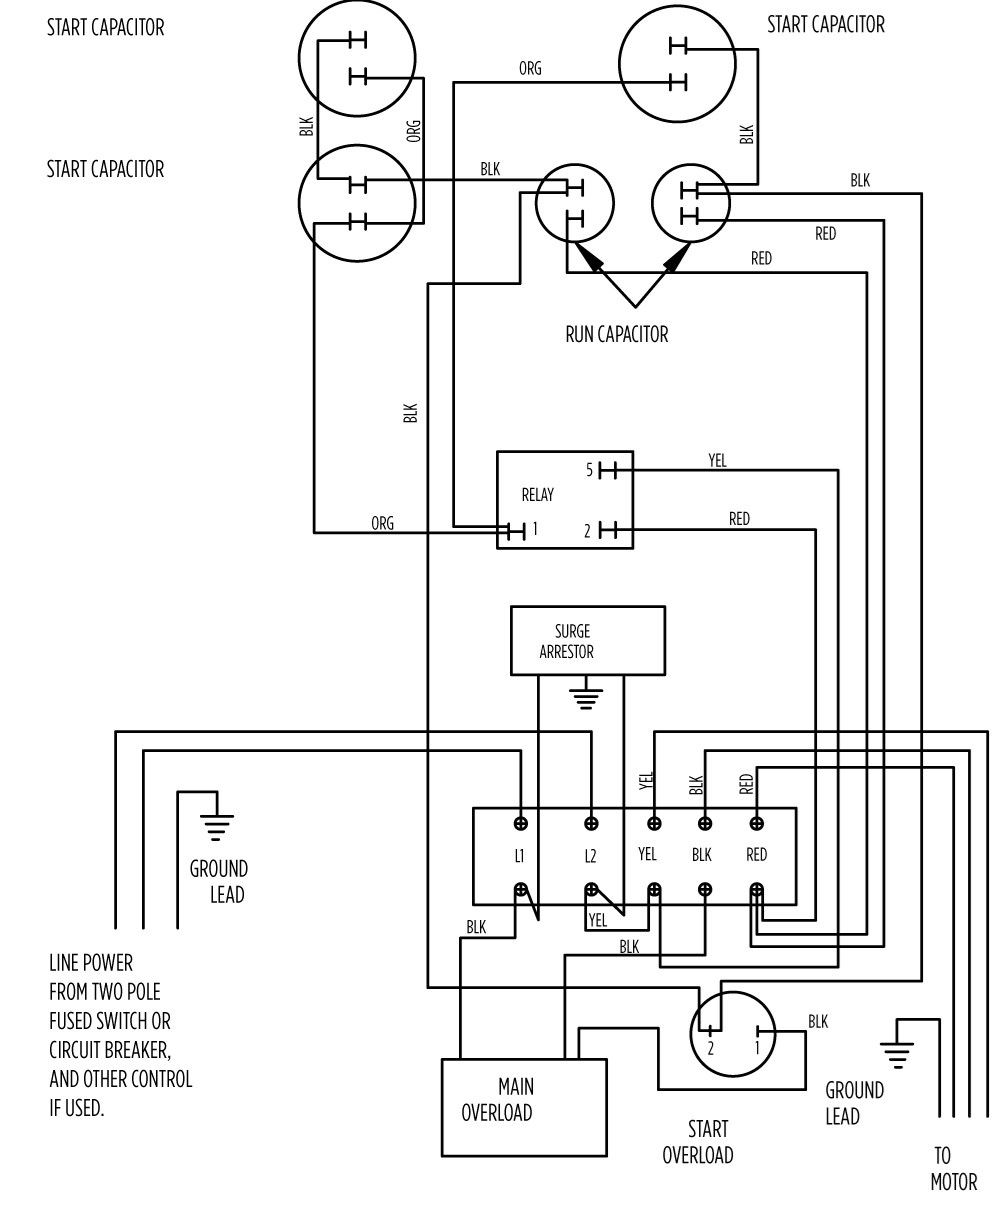 Motor Control Wiring Schematics Library Electrical Technology The Stardelta Y 3phase Starting 10 Hp Standard 282 202 9210 Or 9230